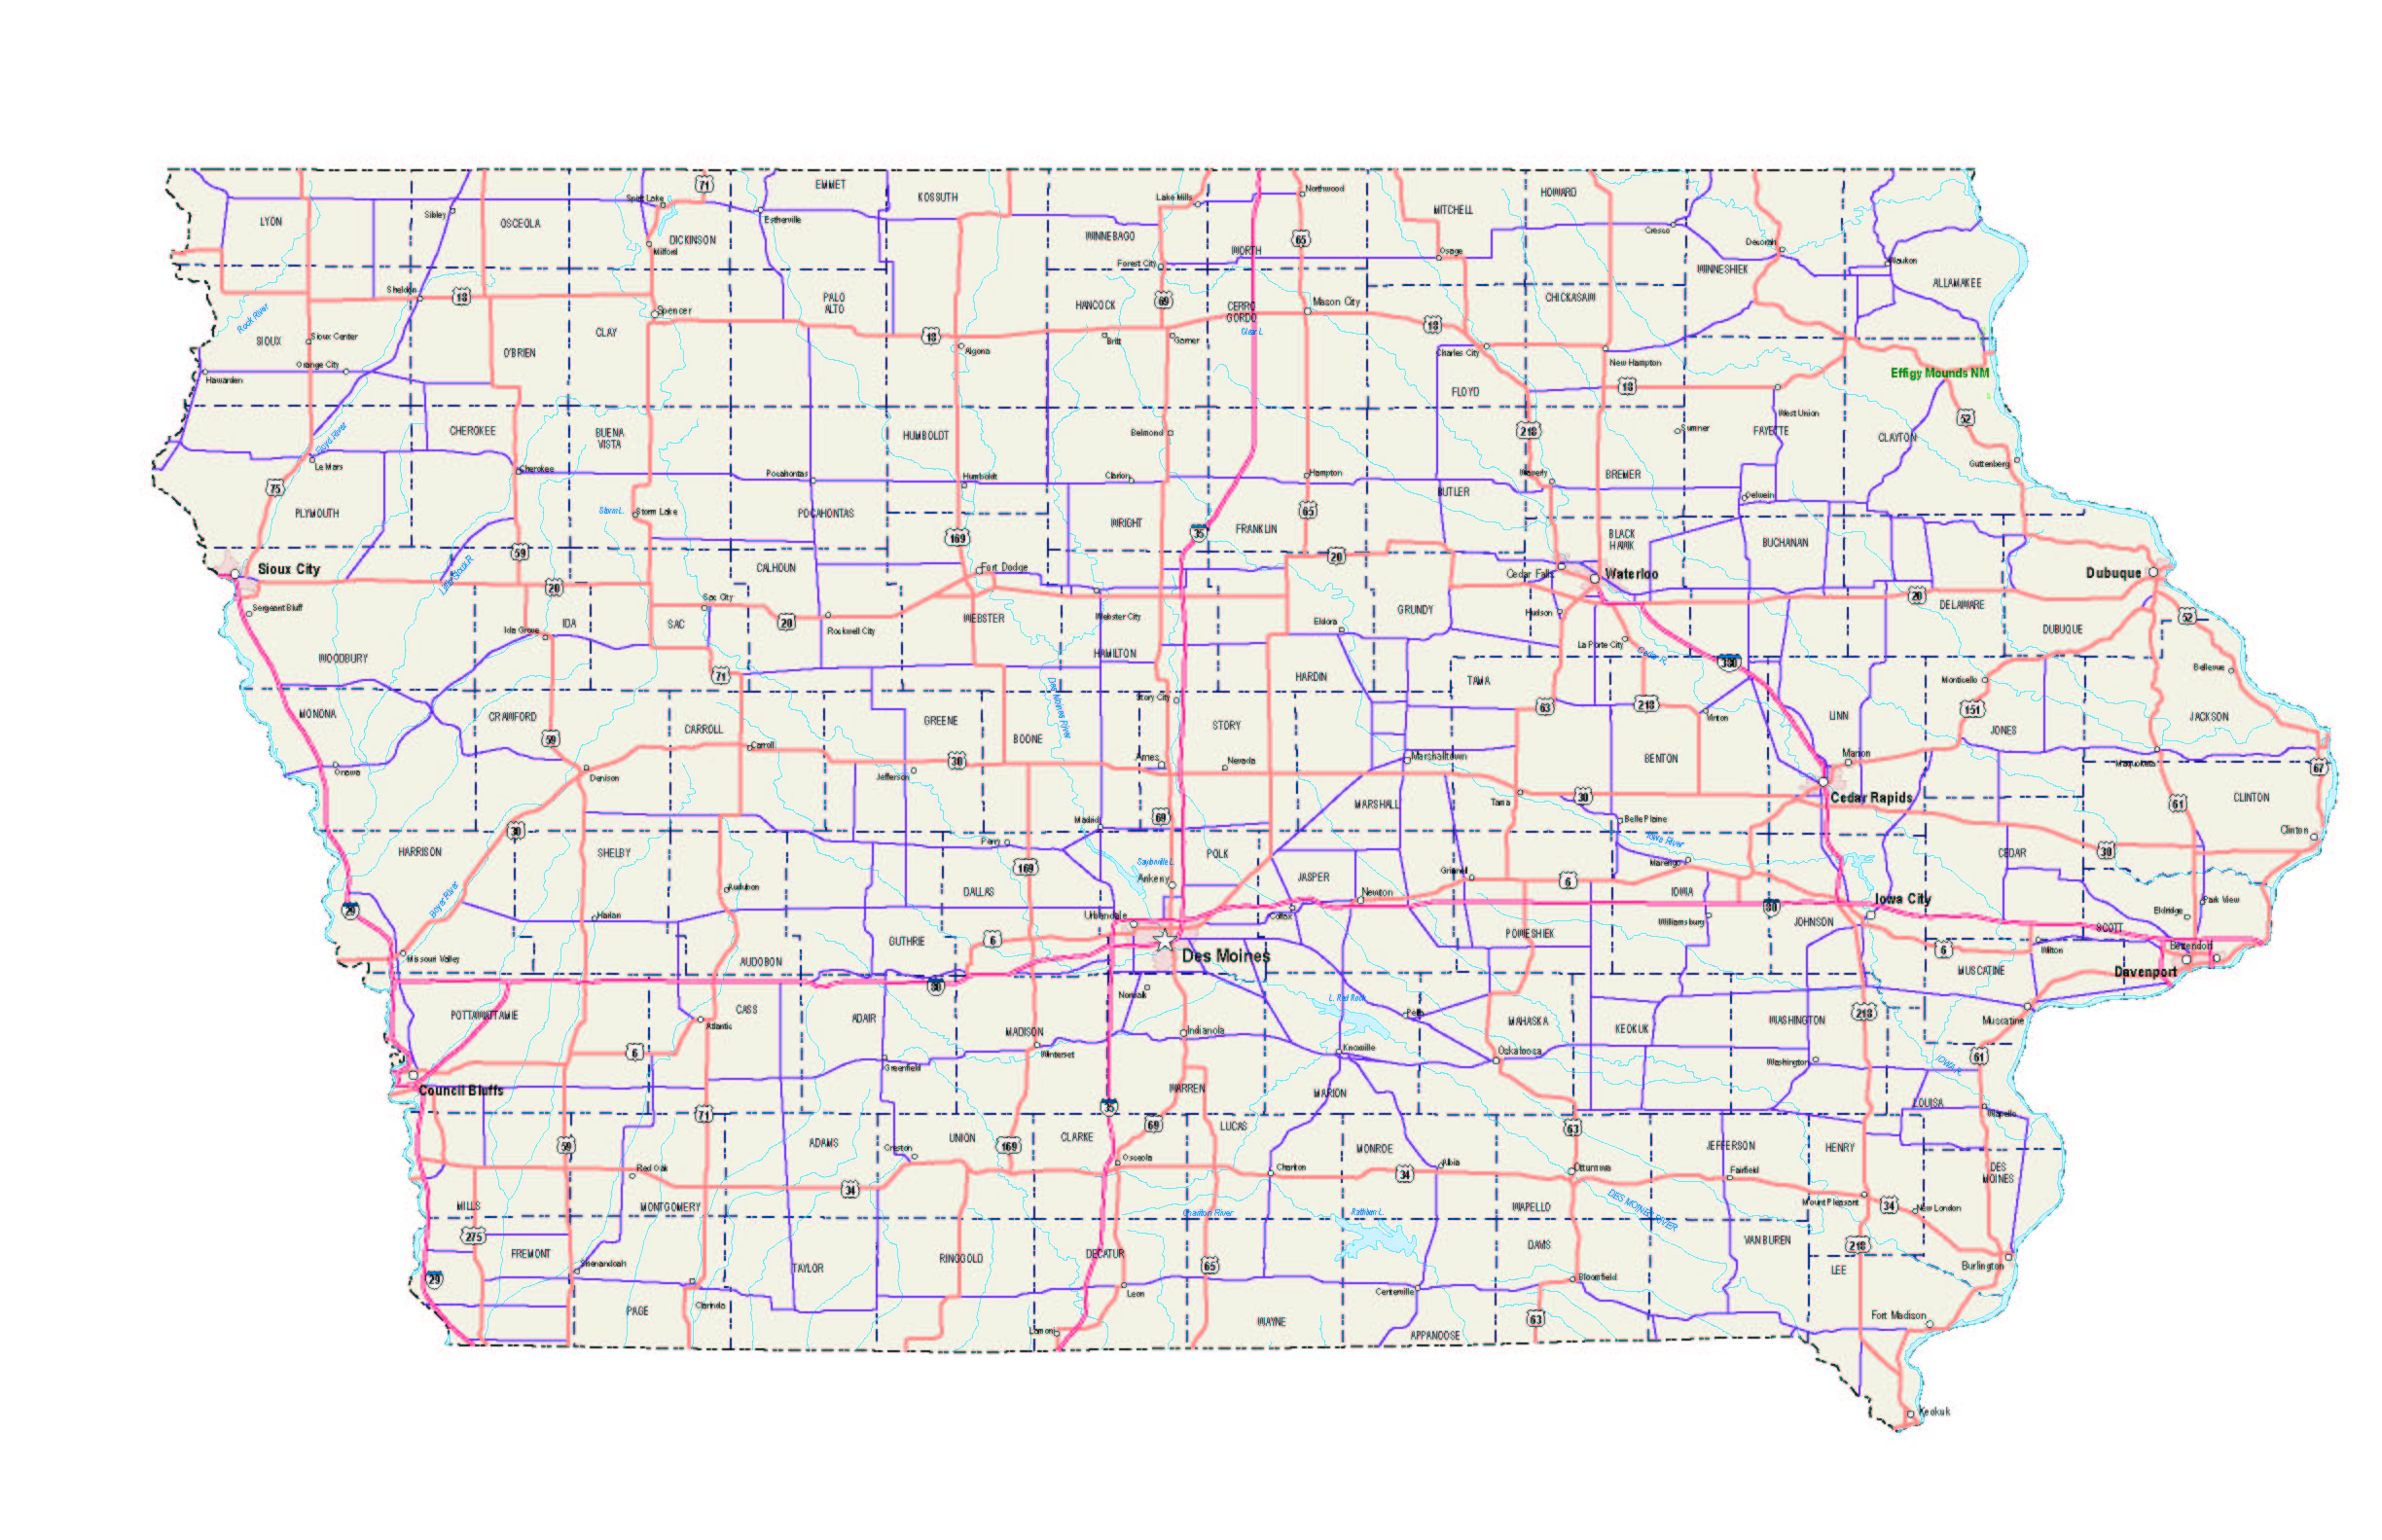 iowa maps - iowa map - iowa road map - iowa state map